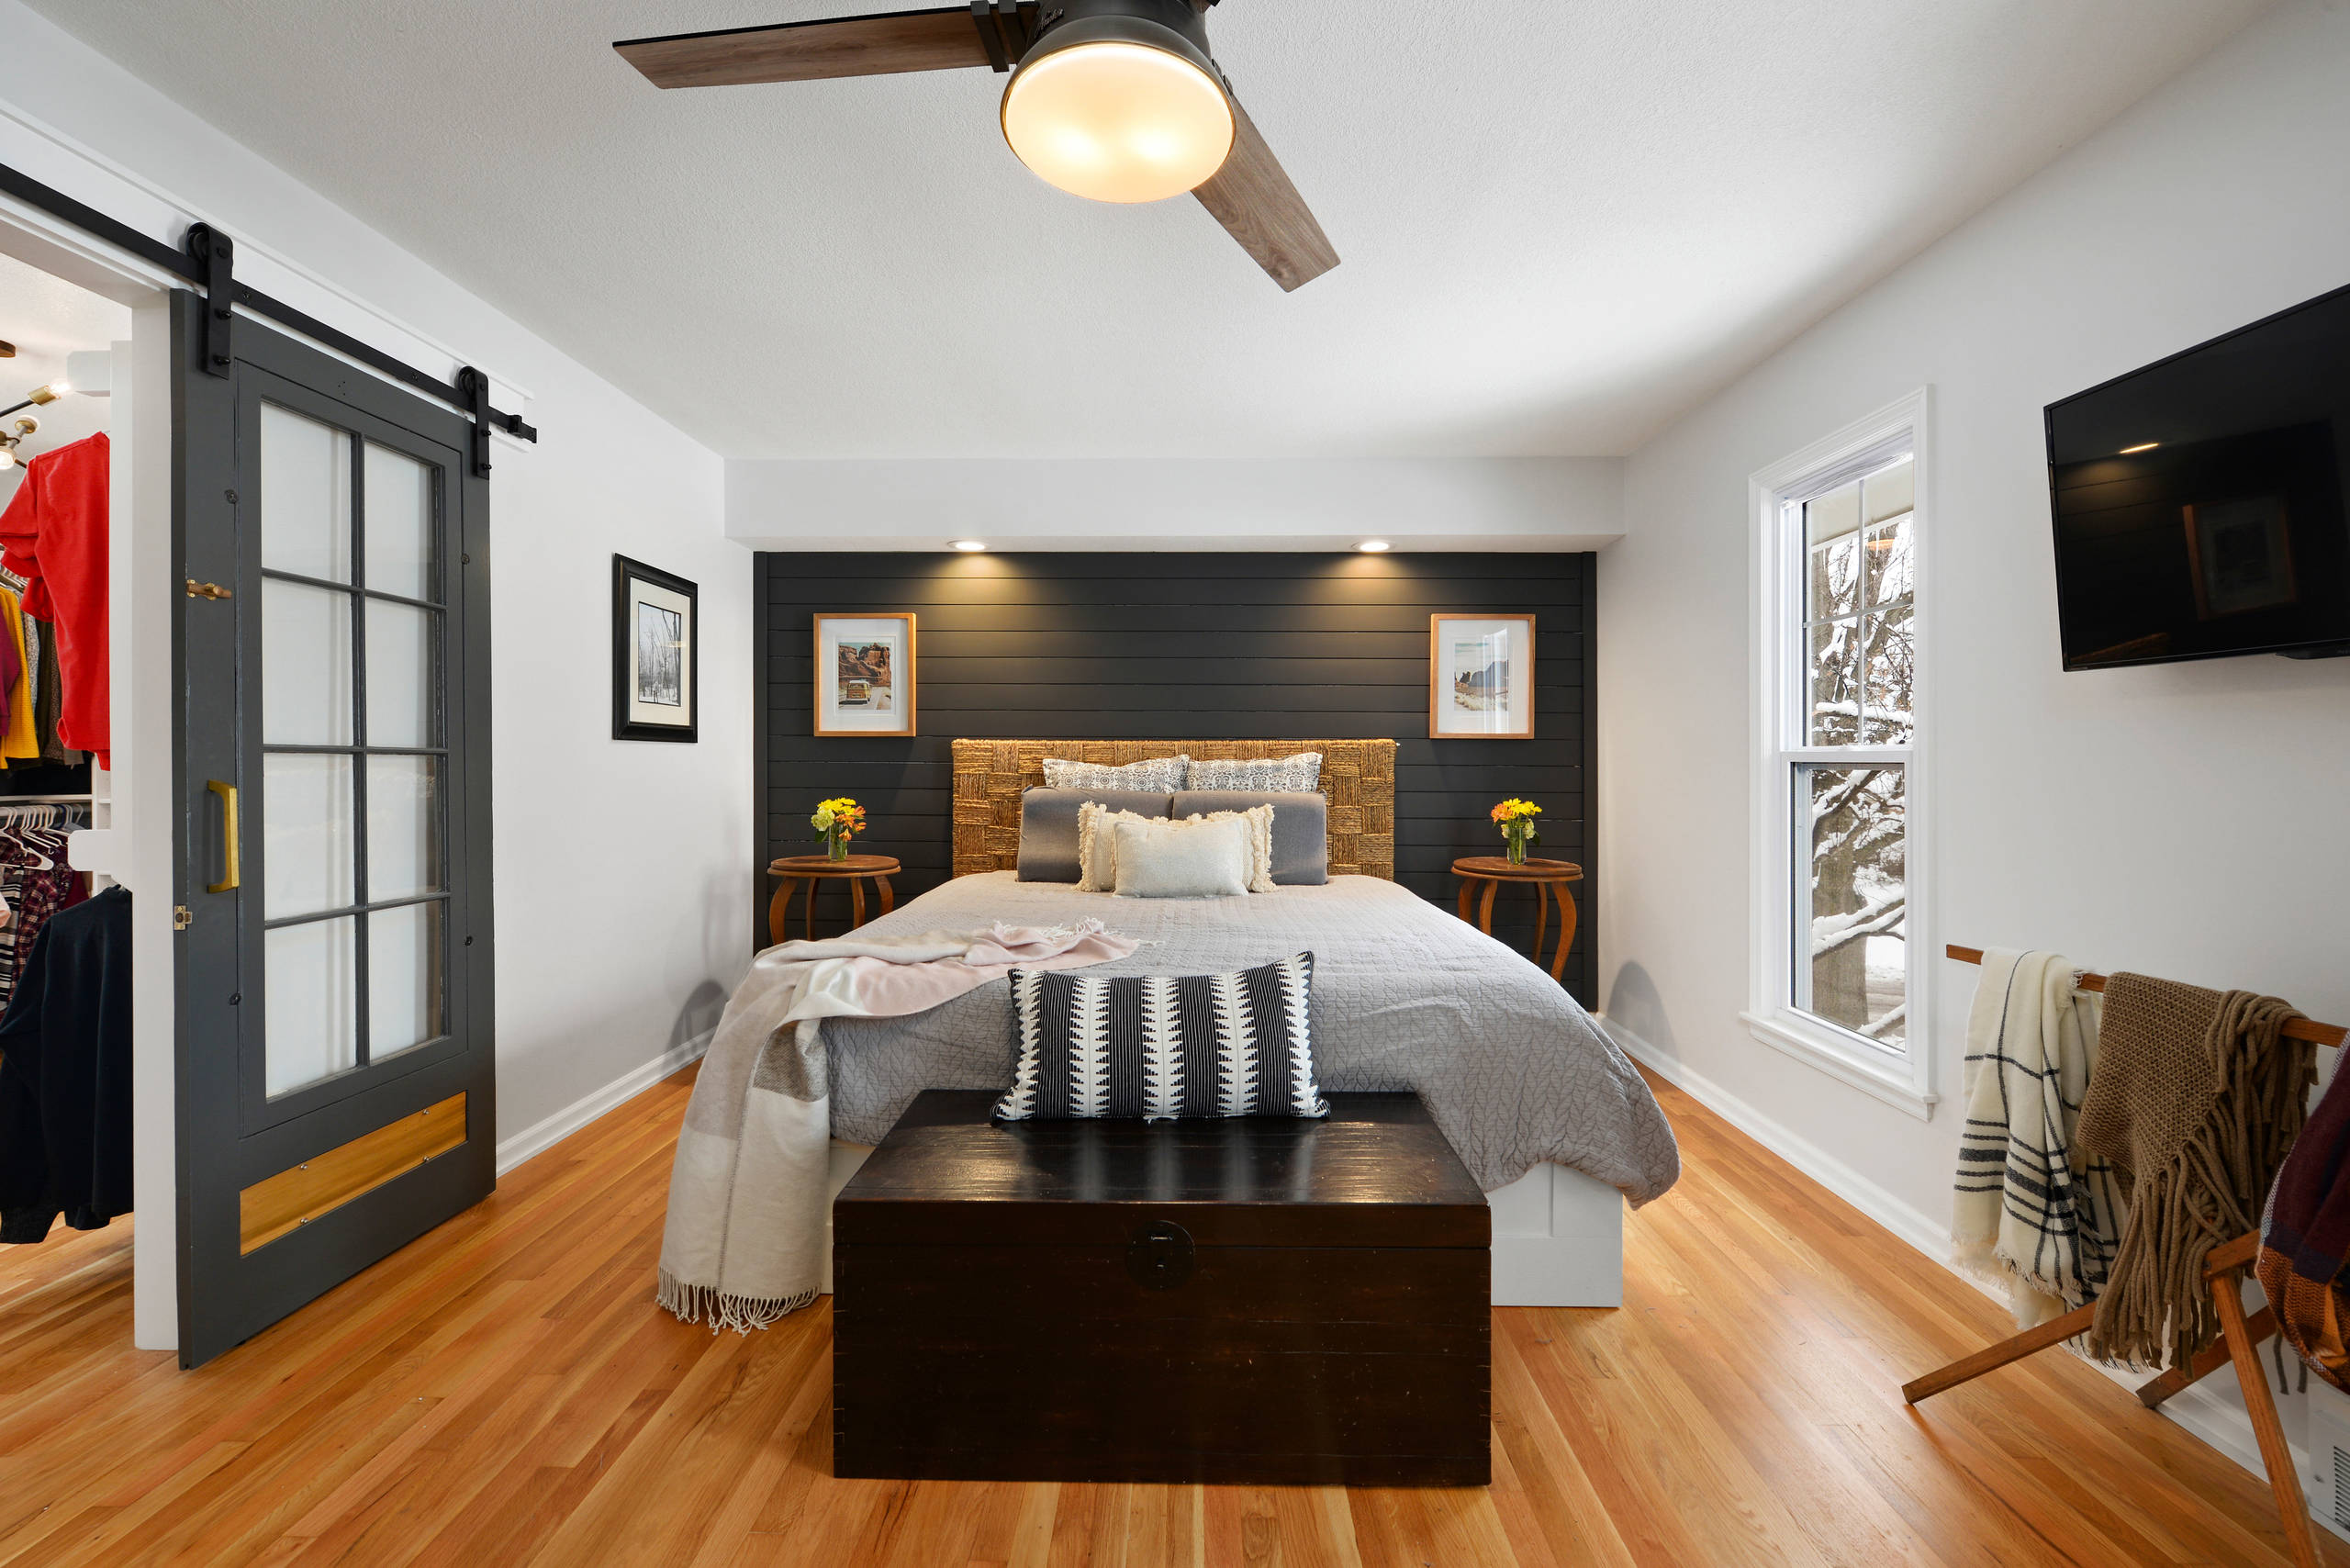 75 Beautiful Master Bedroom Pictures Ideas November 2020 Houzz